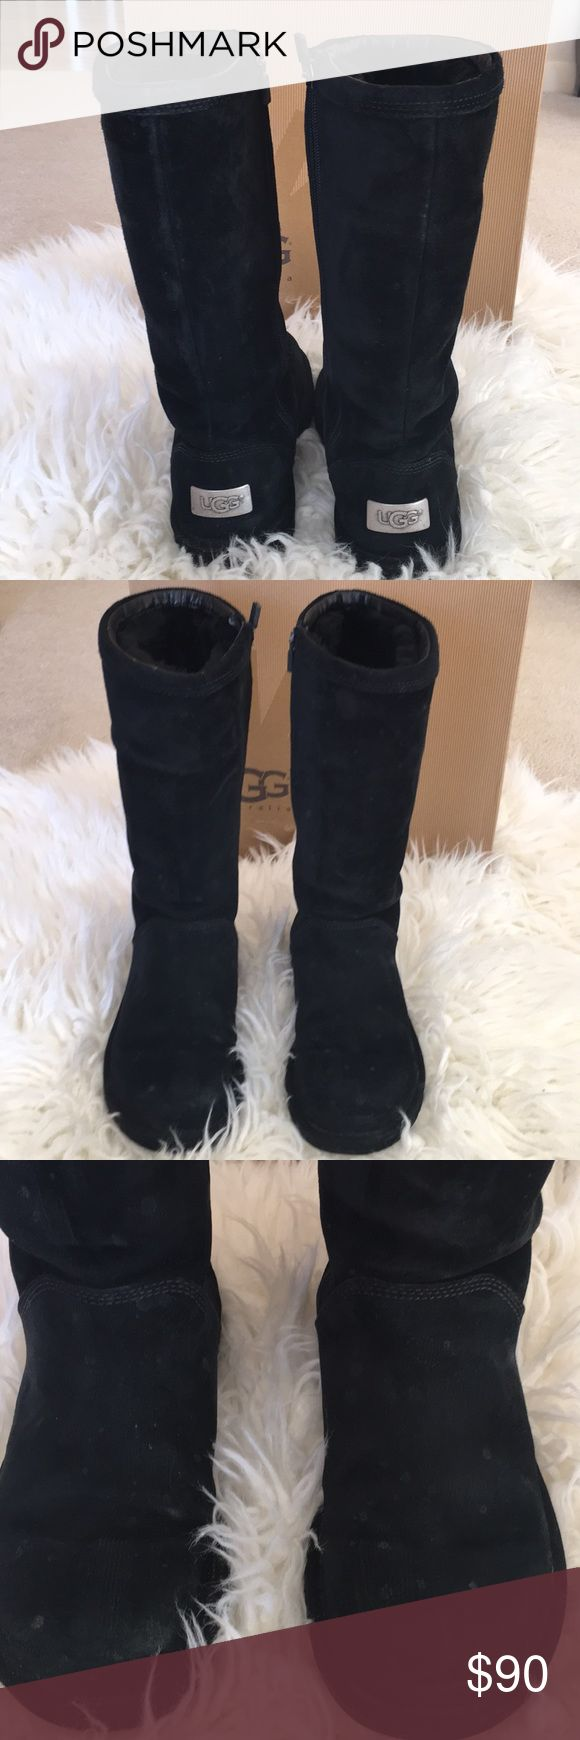 UGGs W Kenly Black Sz 7 UGGs W Kenly Black. Sz 7. Ugg's are still in very good condition, but have some water spots (see picture). A good cleaning would make them like new again. Boots were purchased from Nordstroms. UGG Shoes Winter & Rain Boots